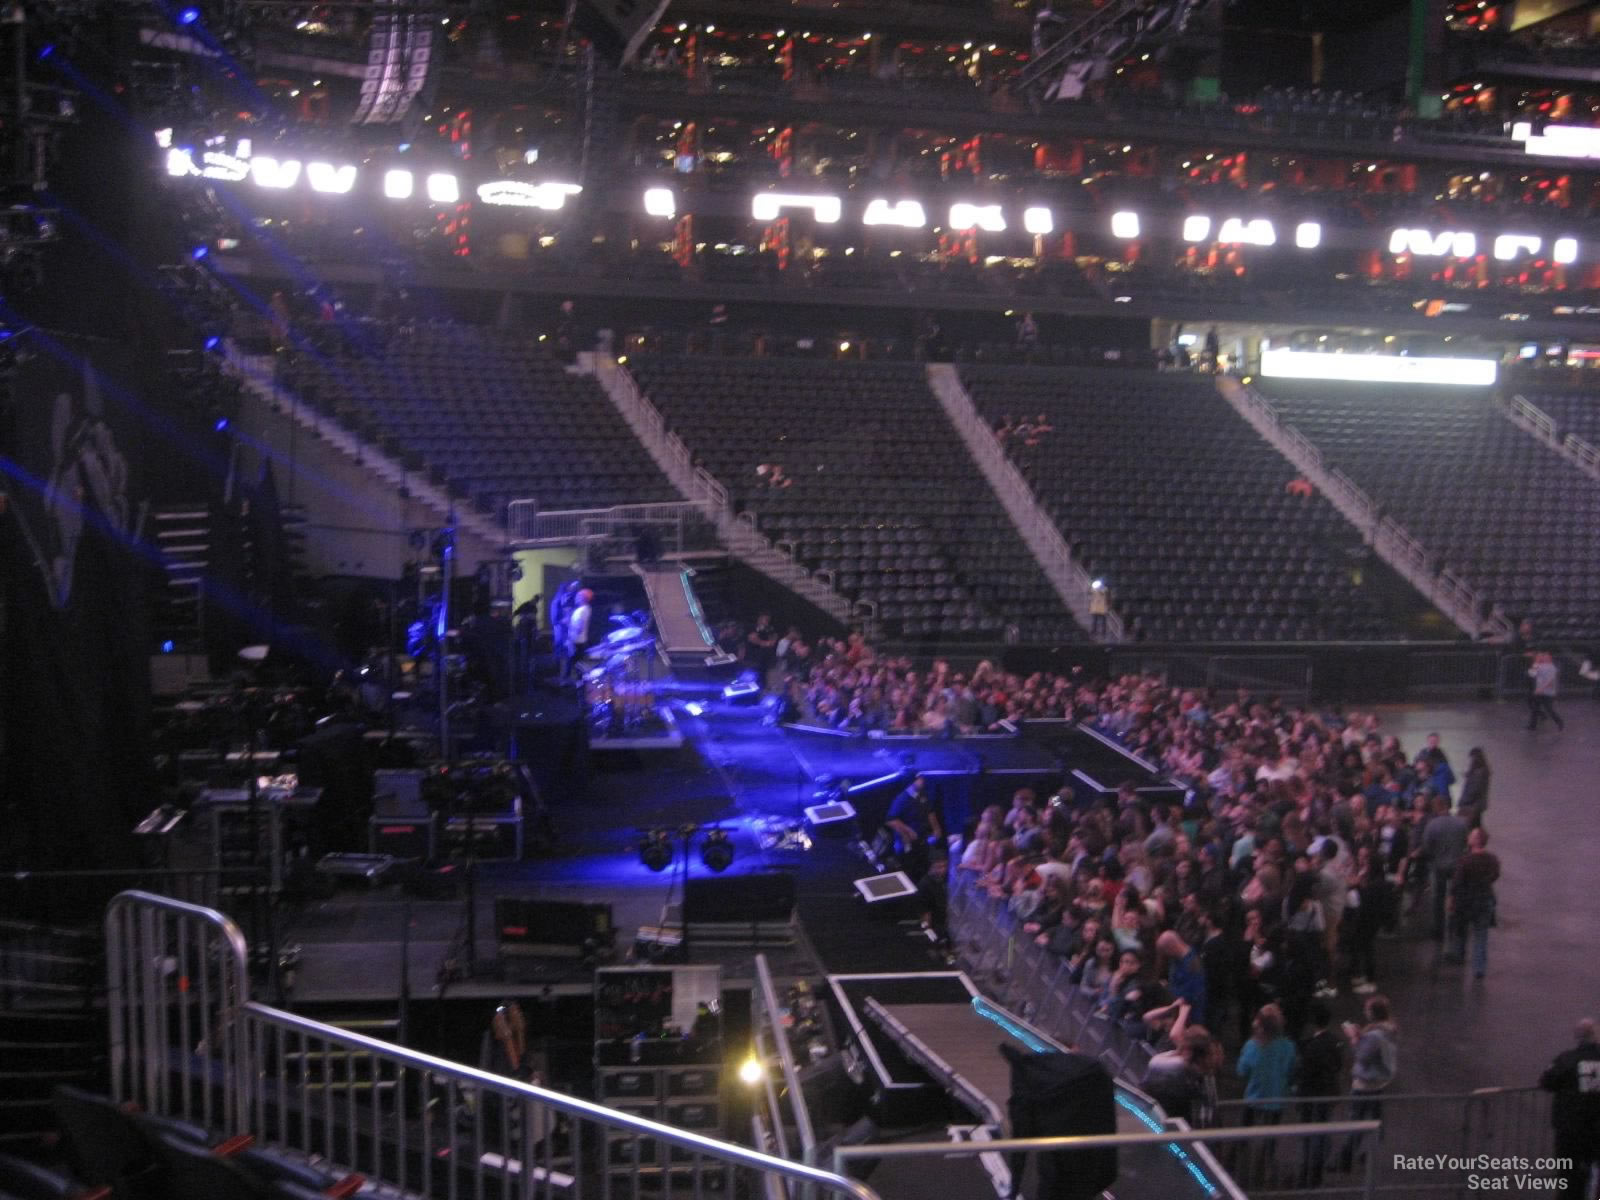 Philips arena section 118 concert seating rateyourseats com